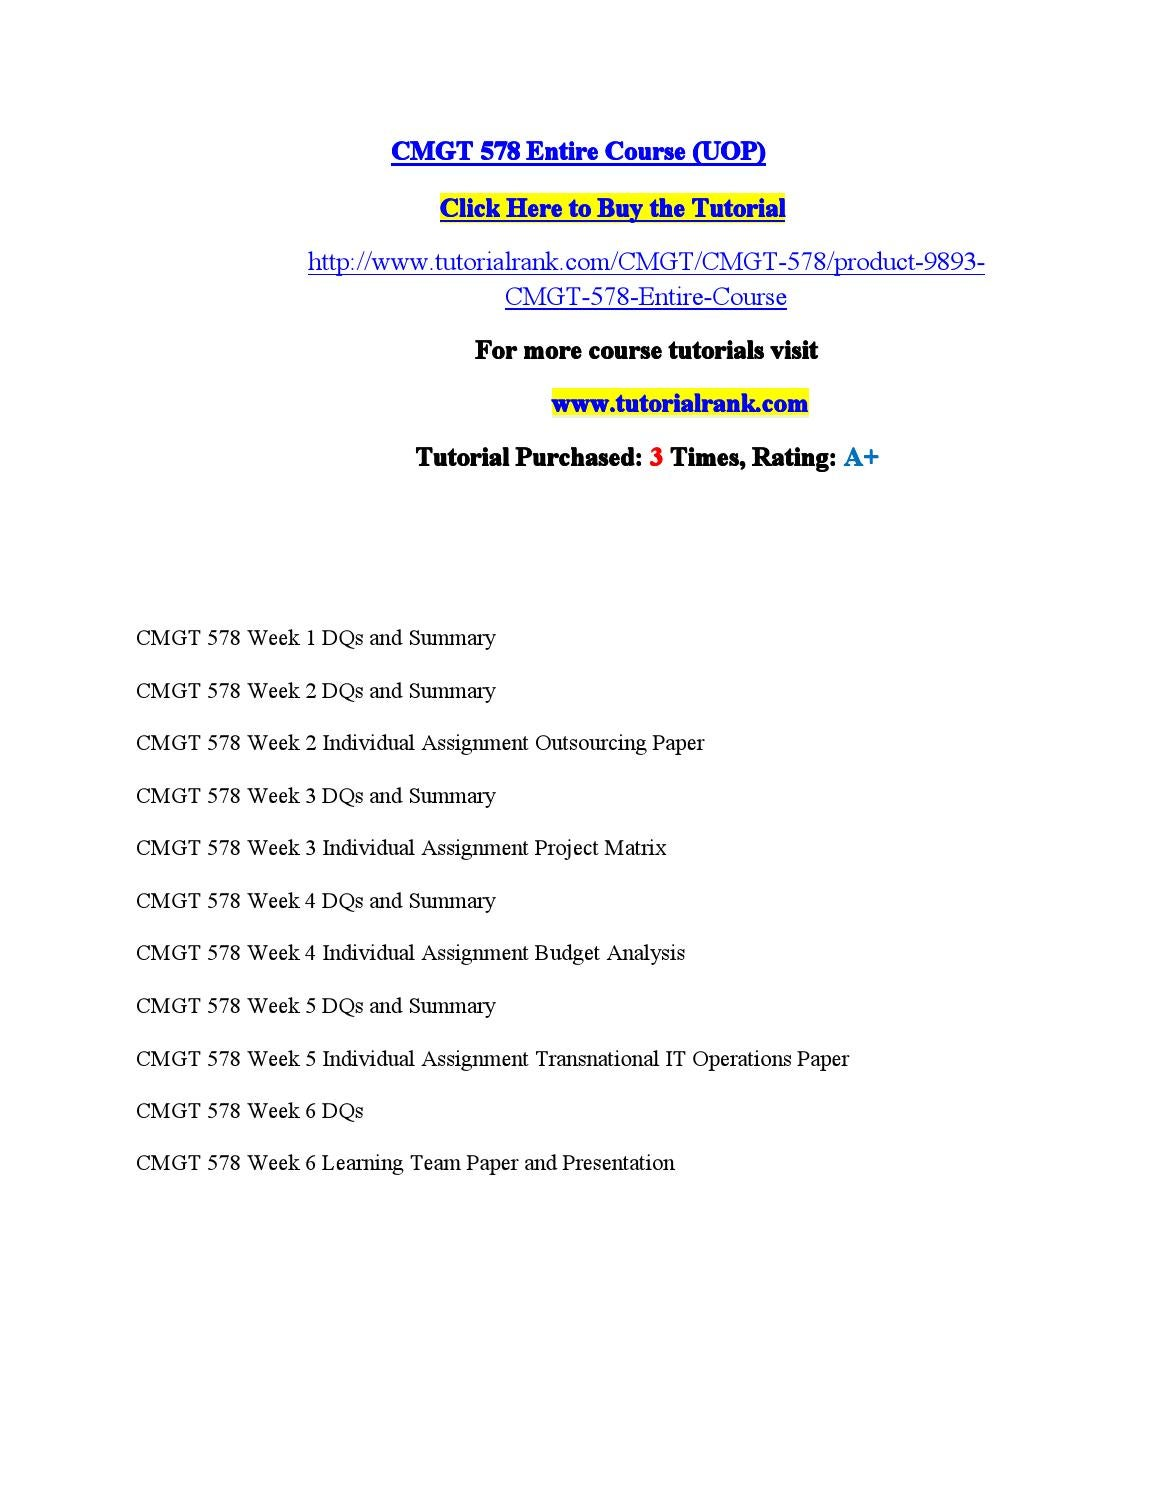 CMGT 555 Week 3 Individual Assignment Entities and Attributes